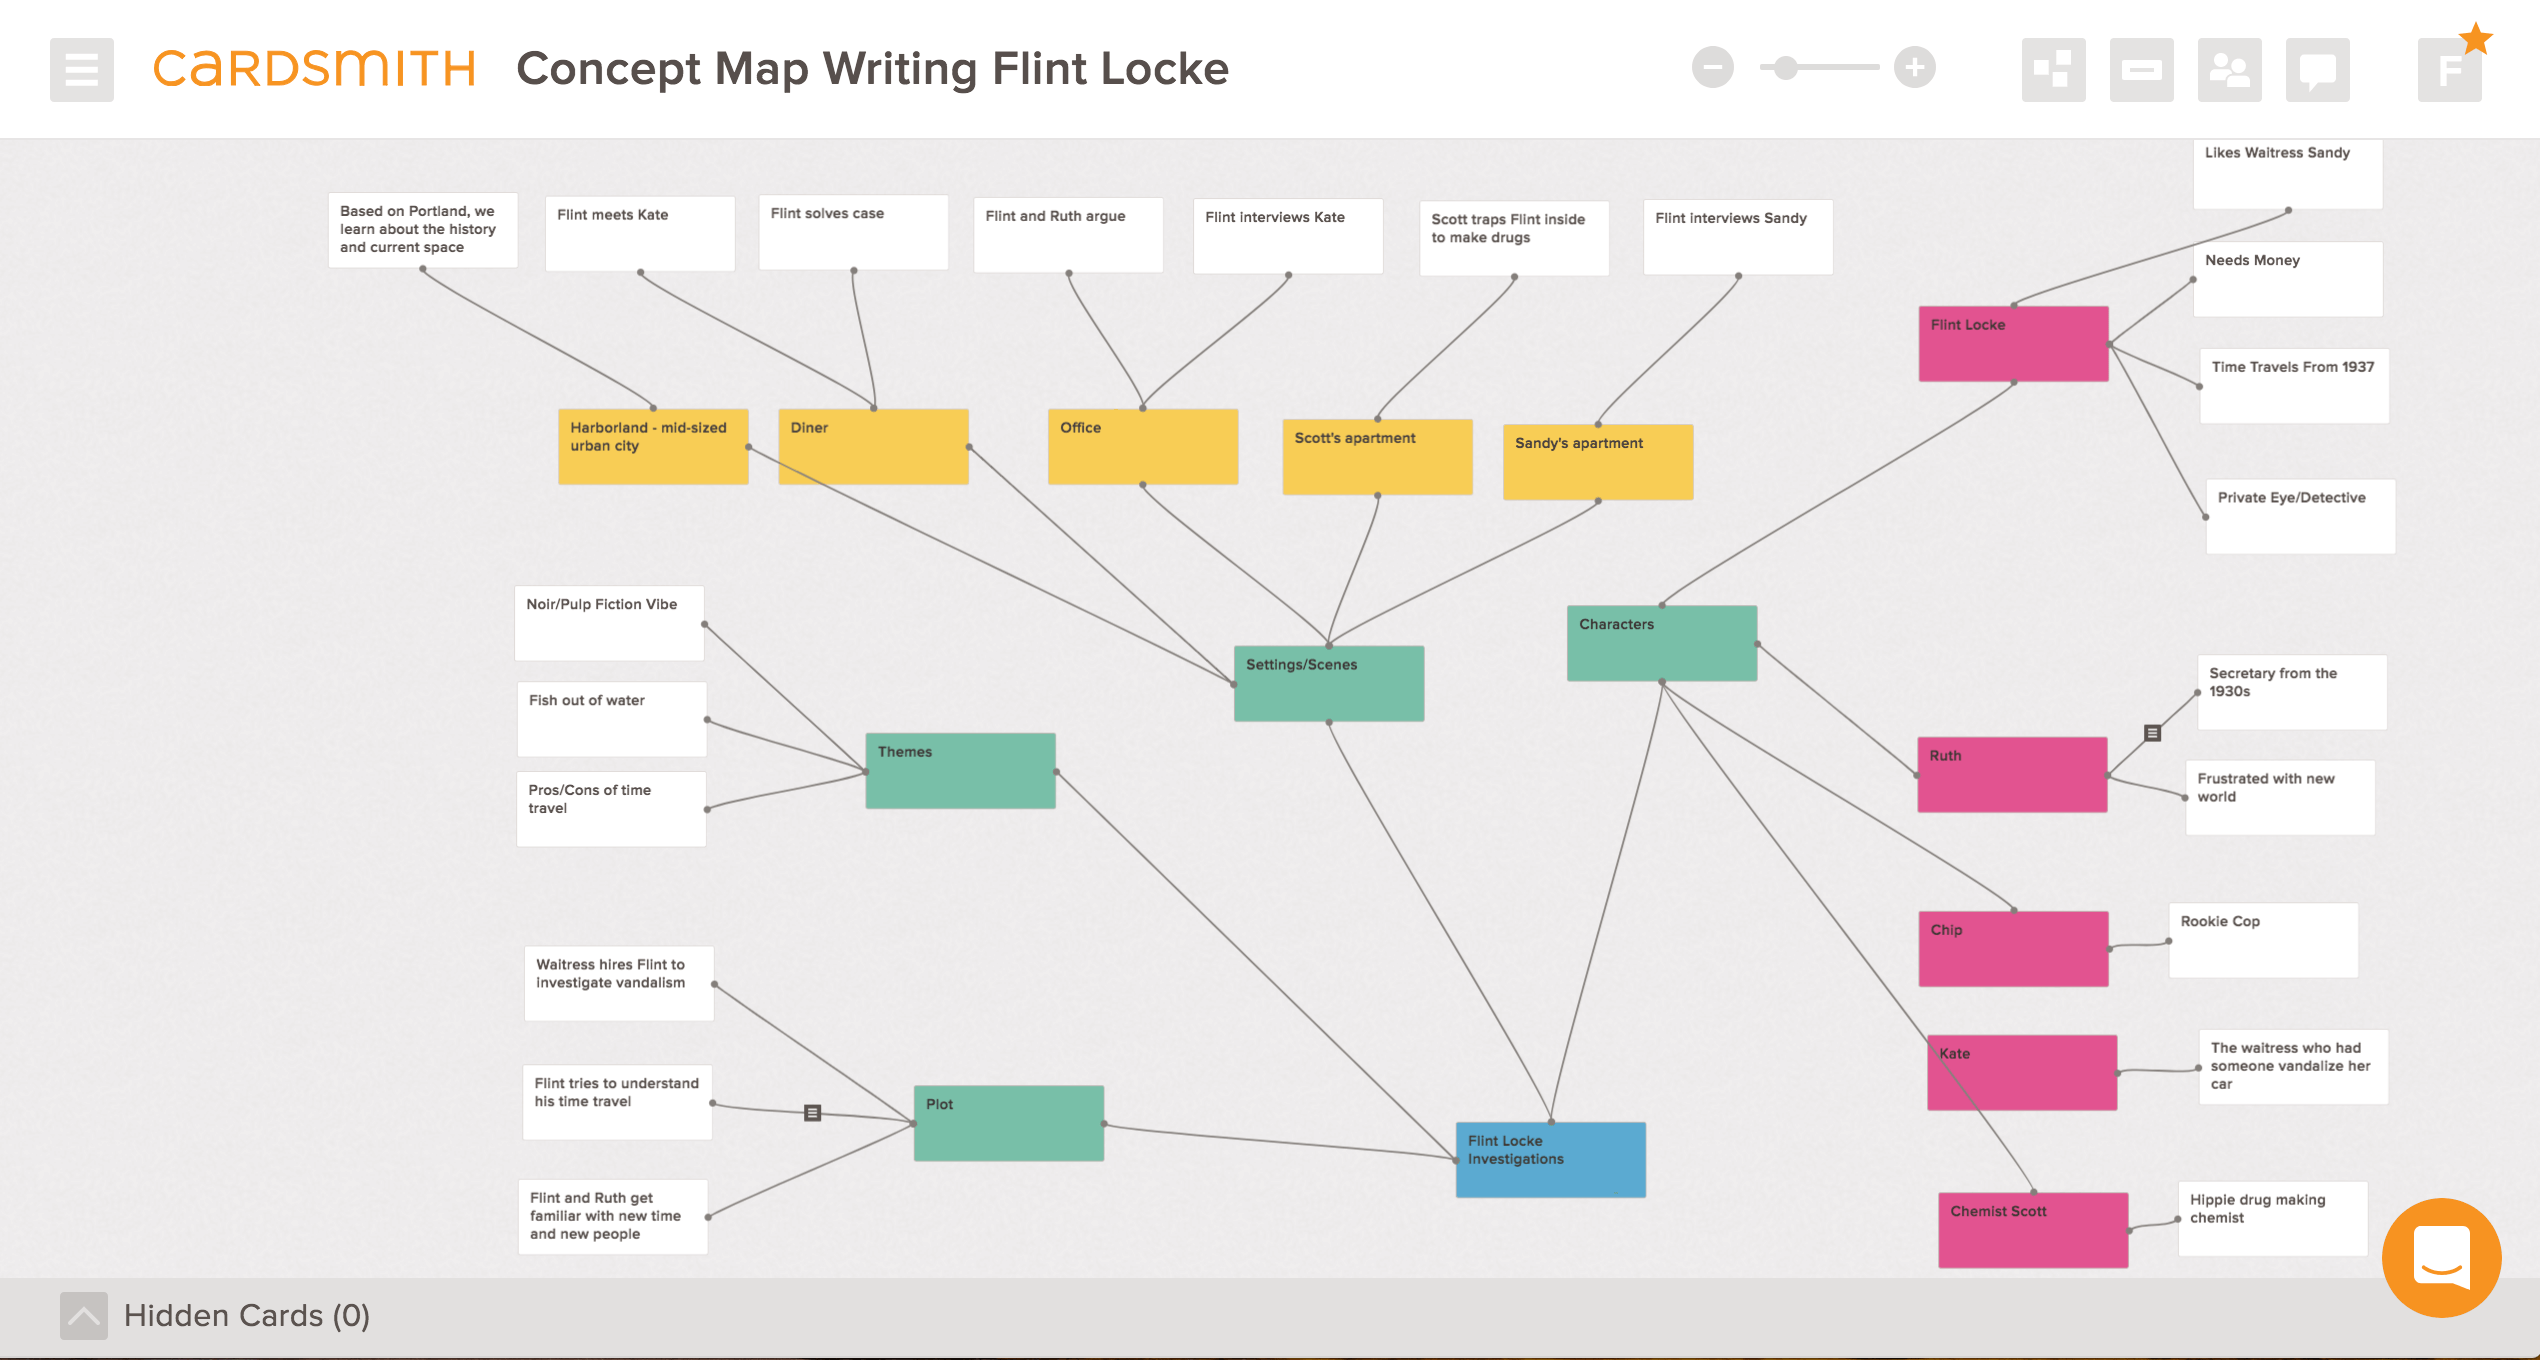 How To Build A Concept Map.Using Mind Mapping And Concept Mapping For Writing Cardsmith